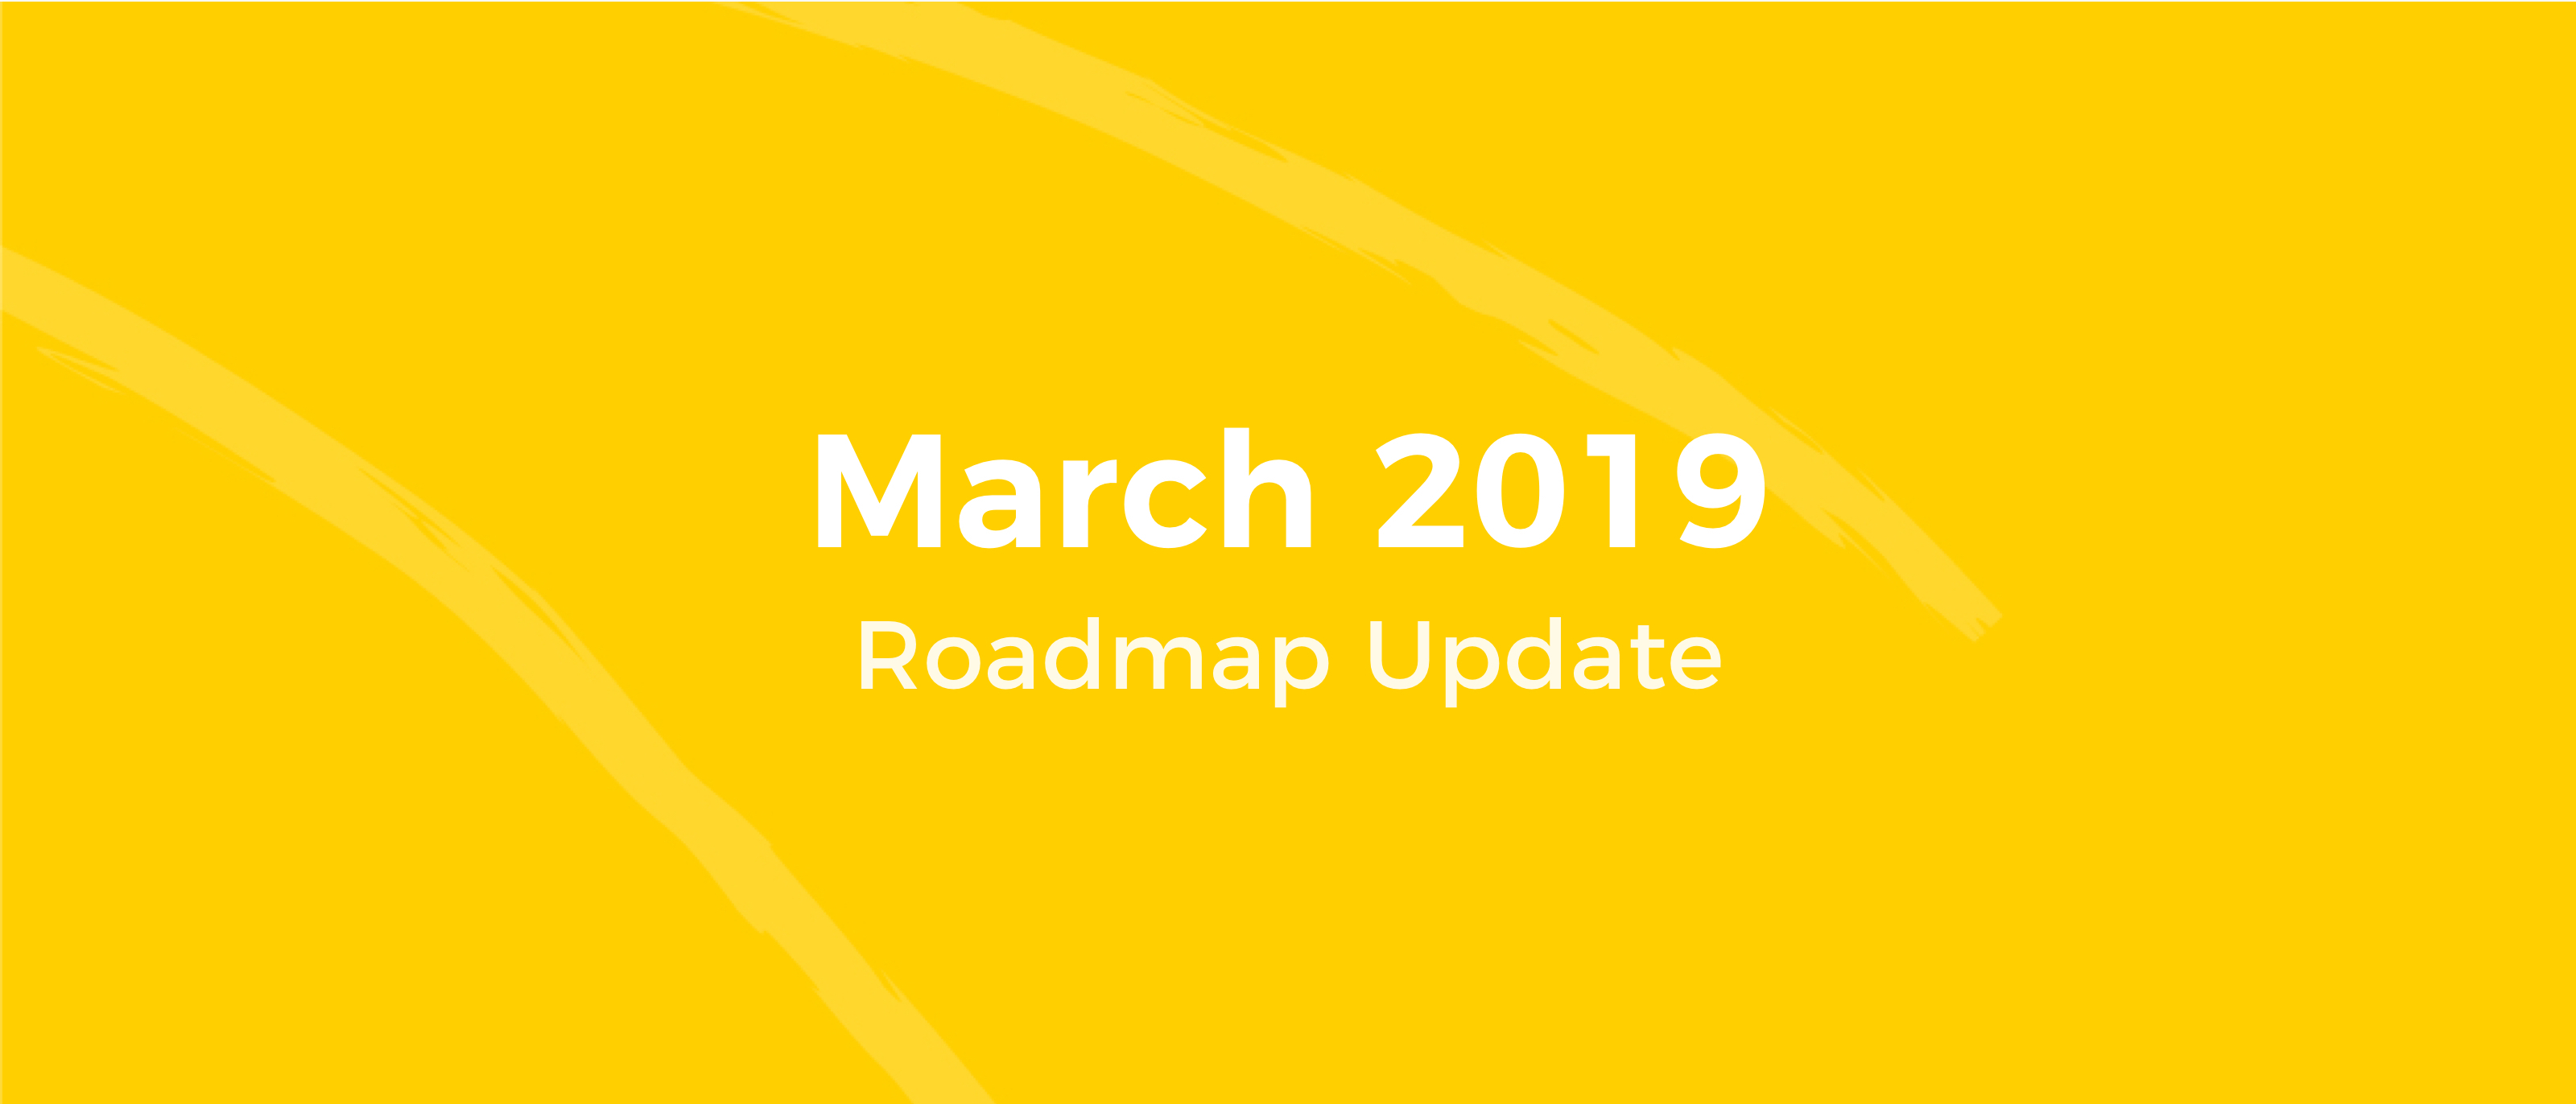 Roadmap Update March 2019